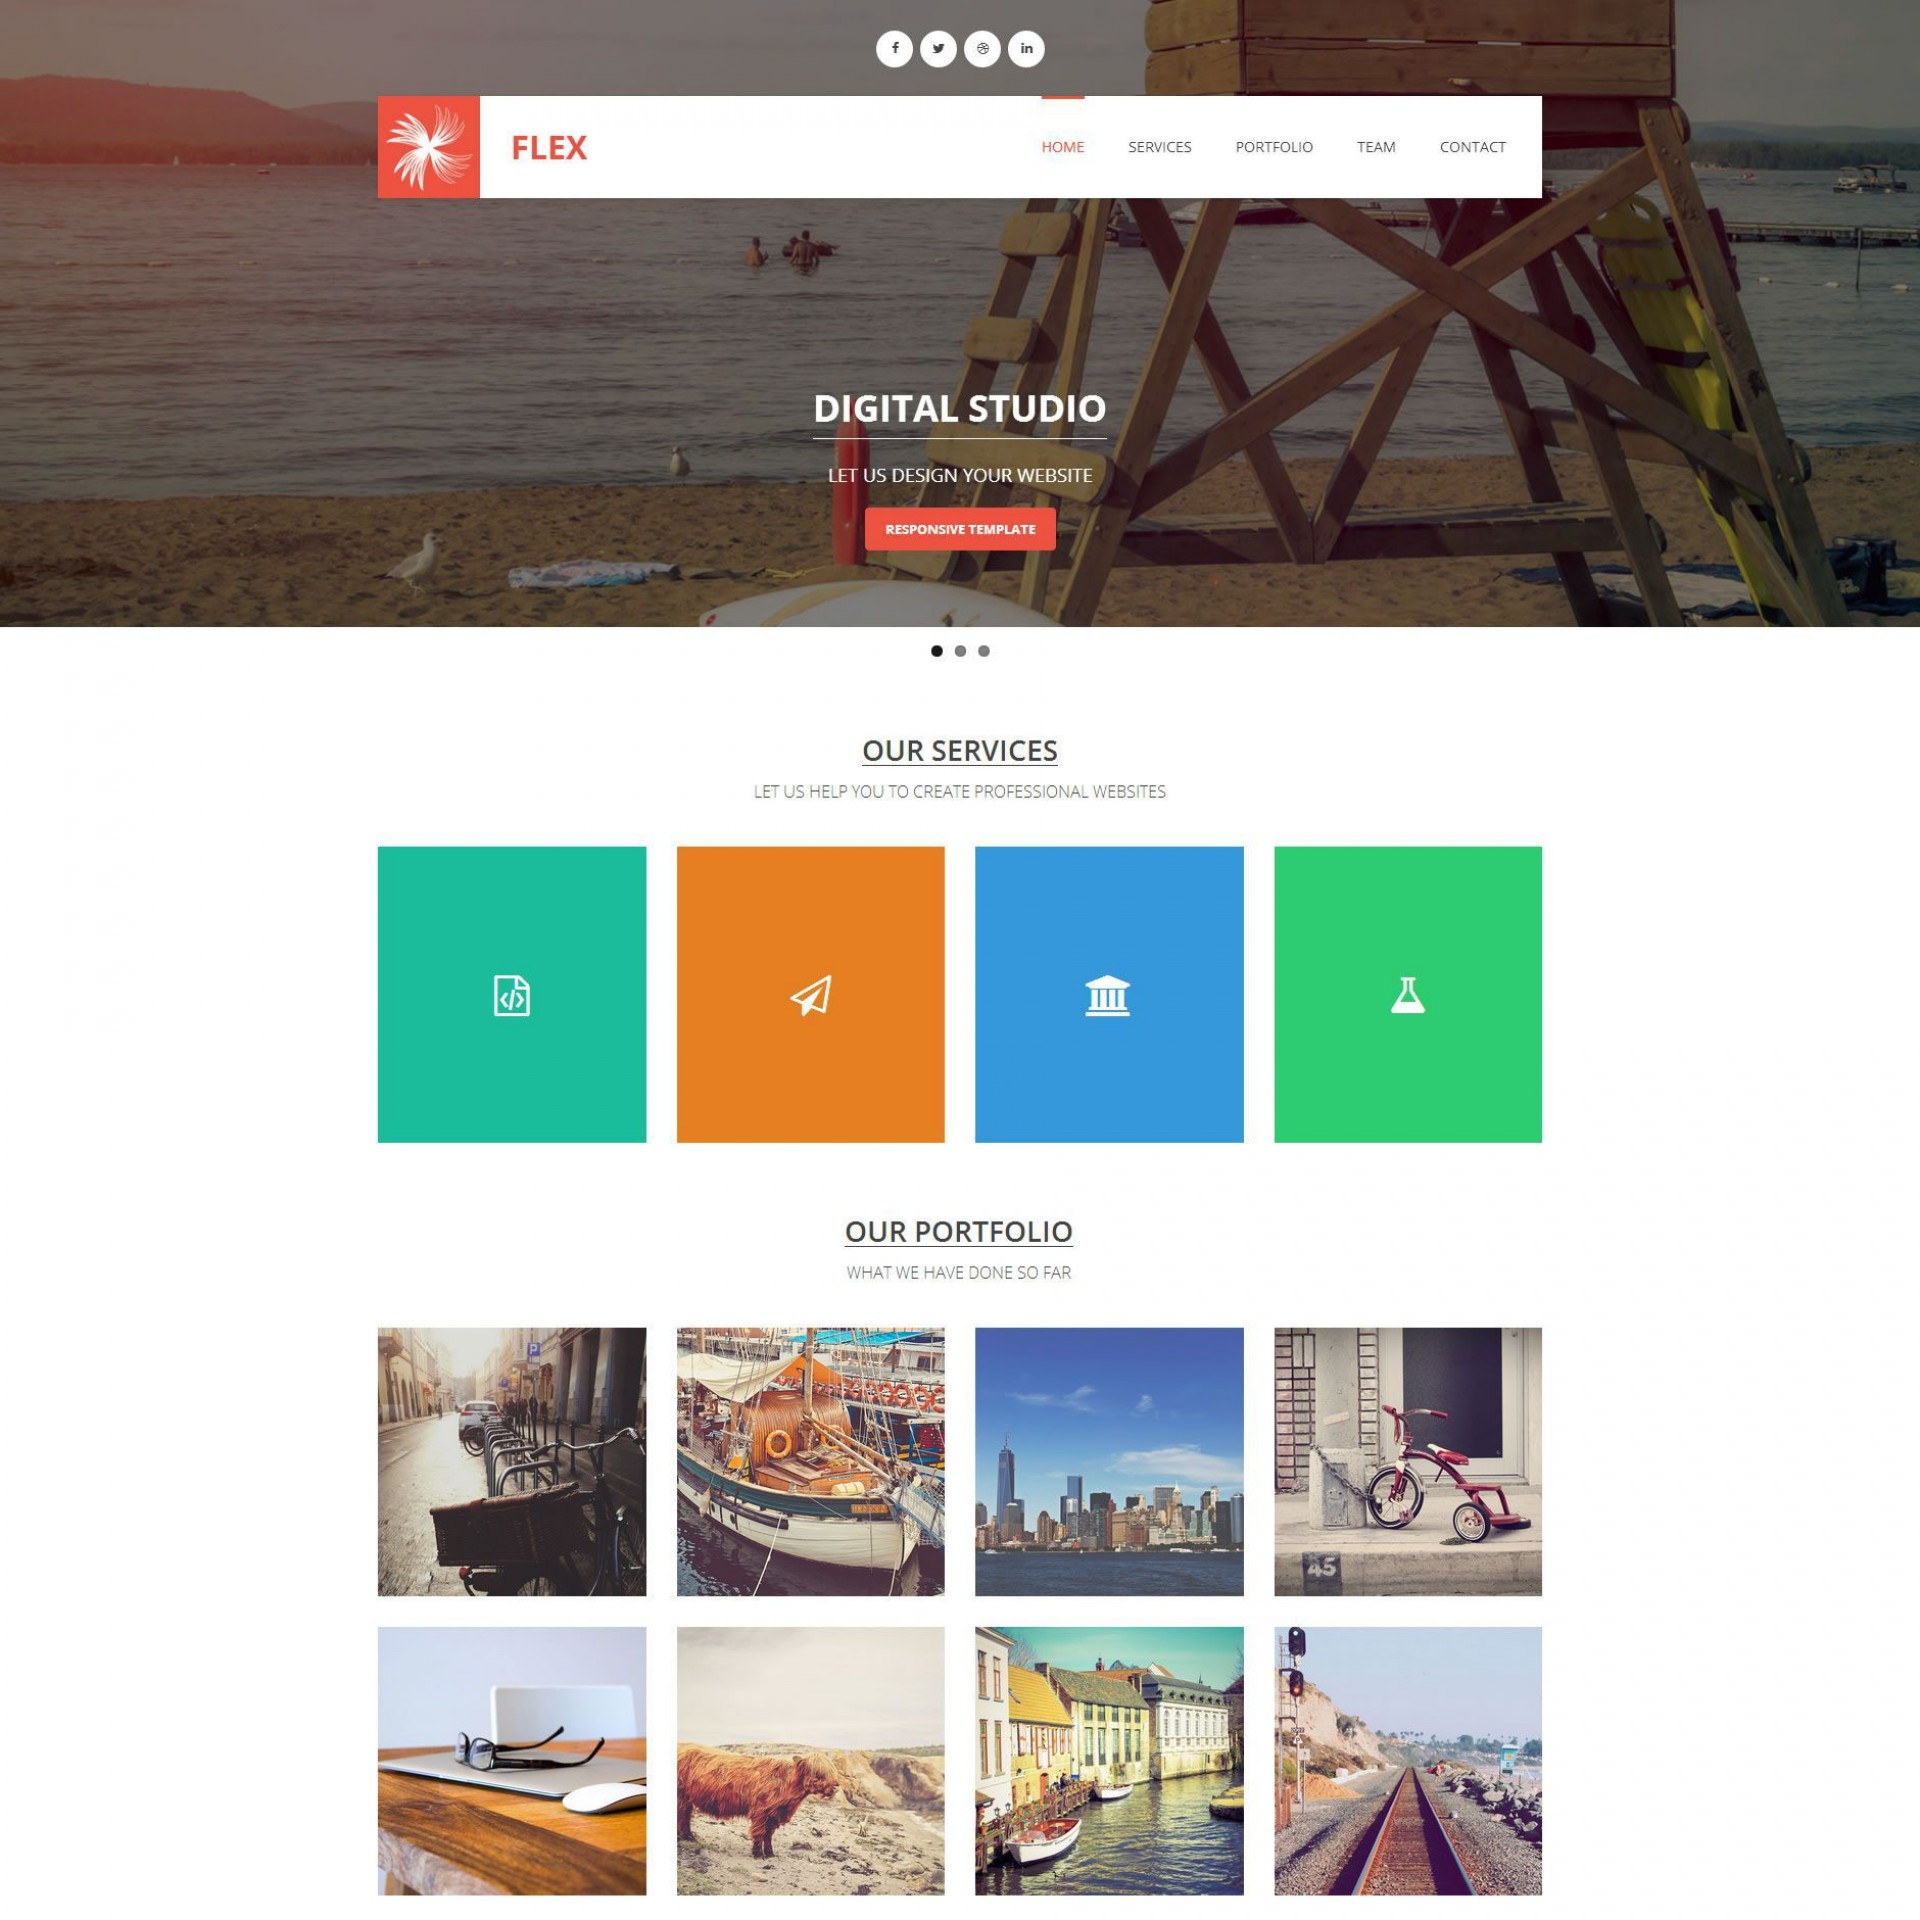 009 Remarkable Free Download Responsive Html Template With Slider Image 1920